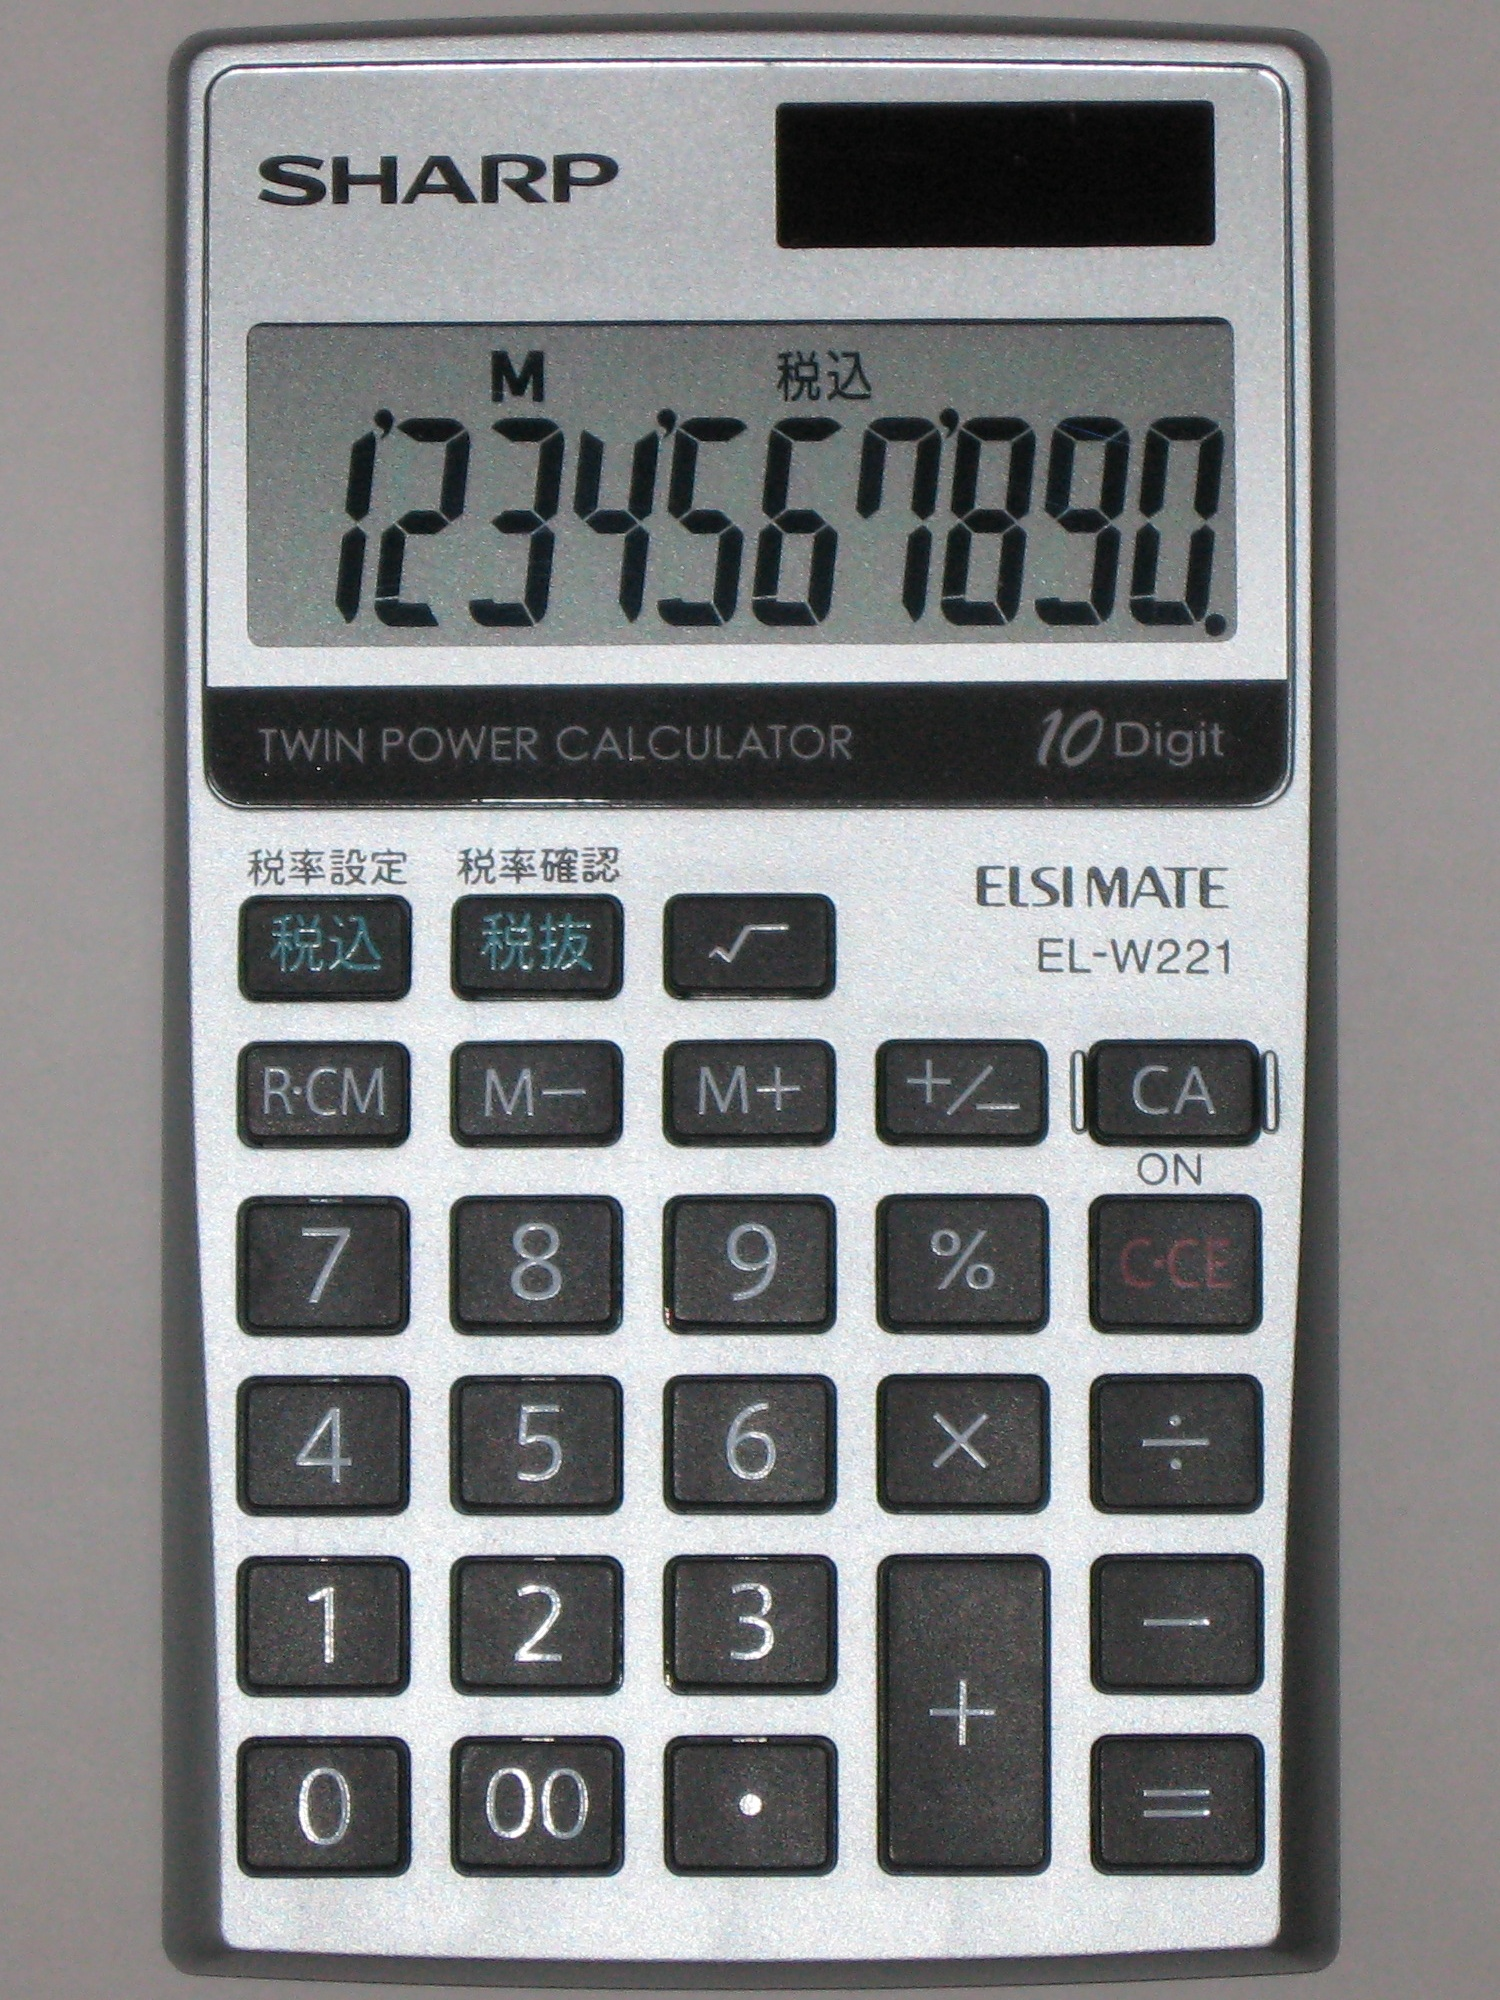 Calculator Wikipedia